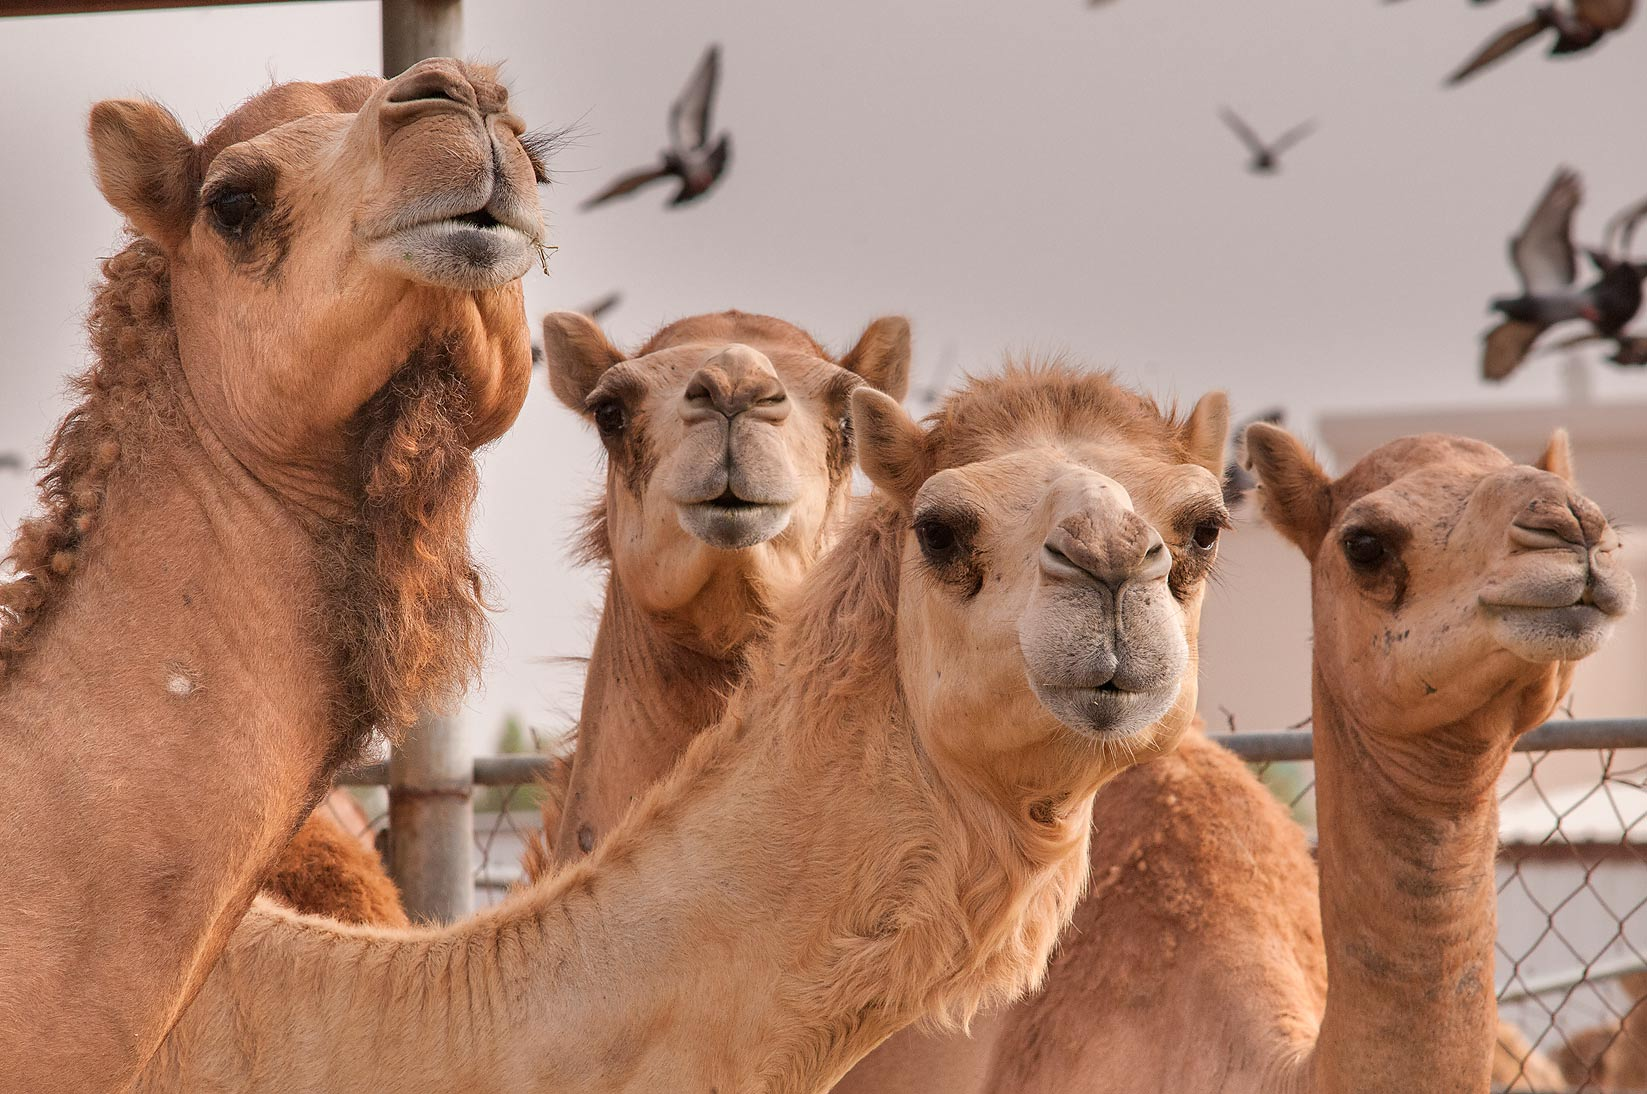 Group of camels in Livestock Market, Abu Hamour area. Doha, Qatar